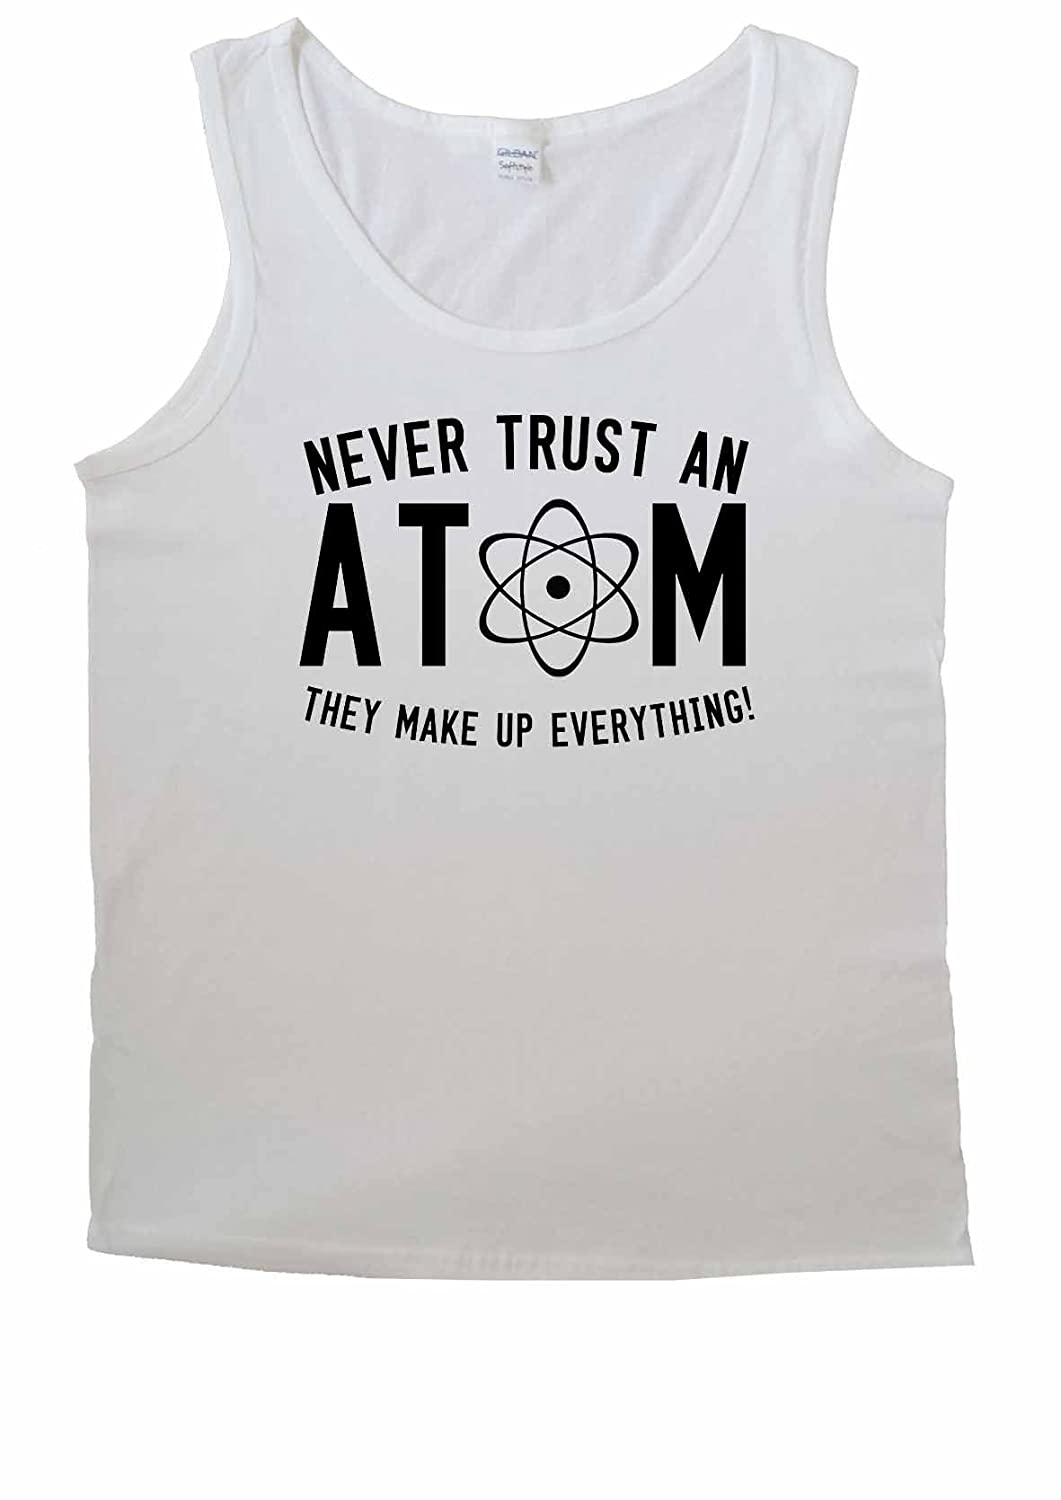 3b27c299 Never Trust An Atom They Make Up Everything For Men Vest Tank Top T Shirt-S:  Amazon.co.uk: Clothing